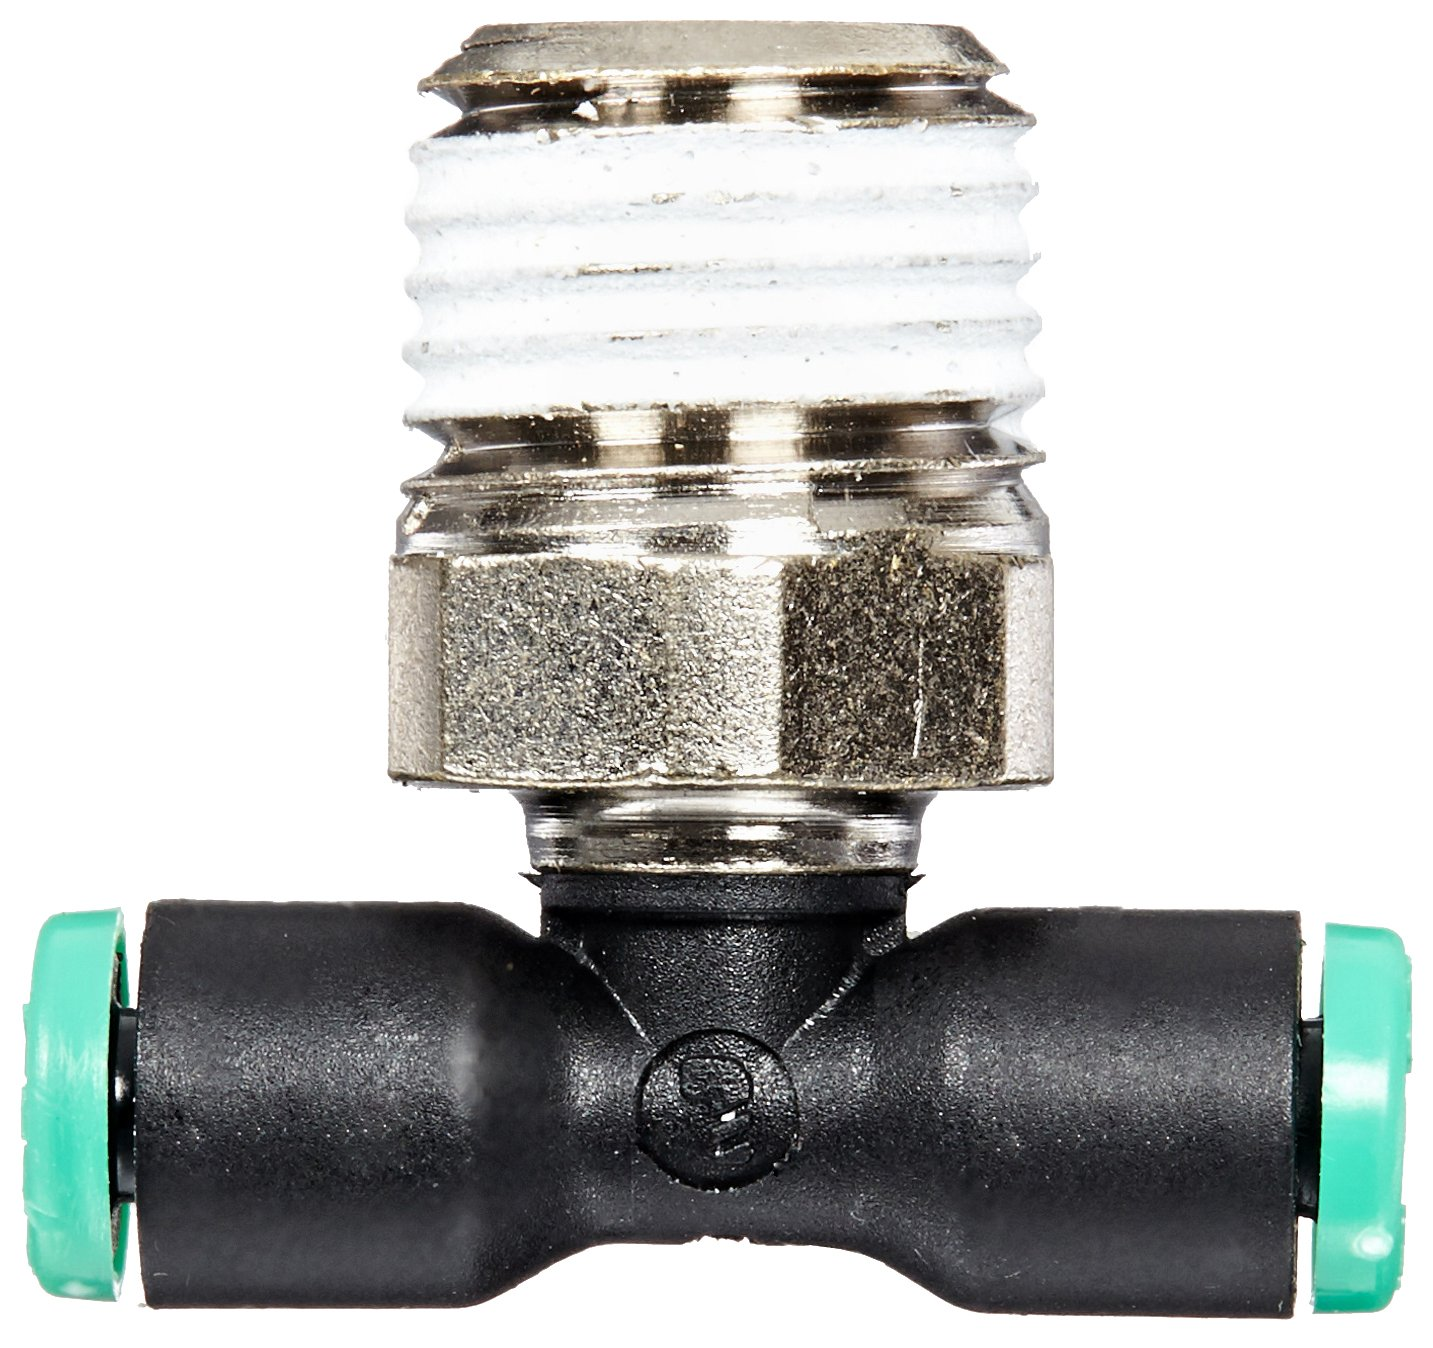 Legris 3108 53 14 Nylon /& Nickel-Plated Brass Push-to-Connect Fitting Branch Tee 1//8 Tube OD x 1//4 NPT Male 1//8 Tube OD x 1//4 NPT Male Parker Legris W372PLP-2-4